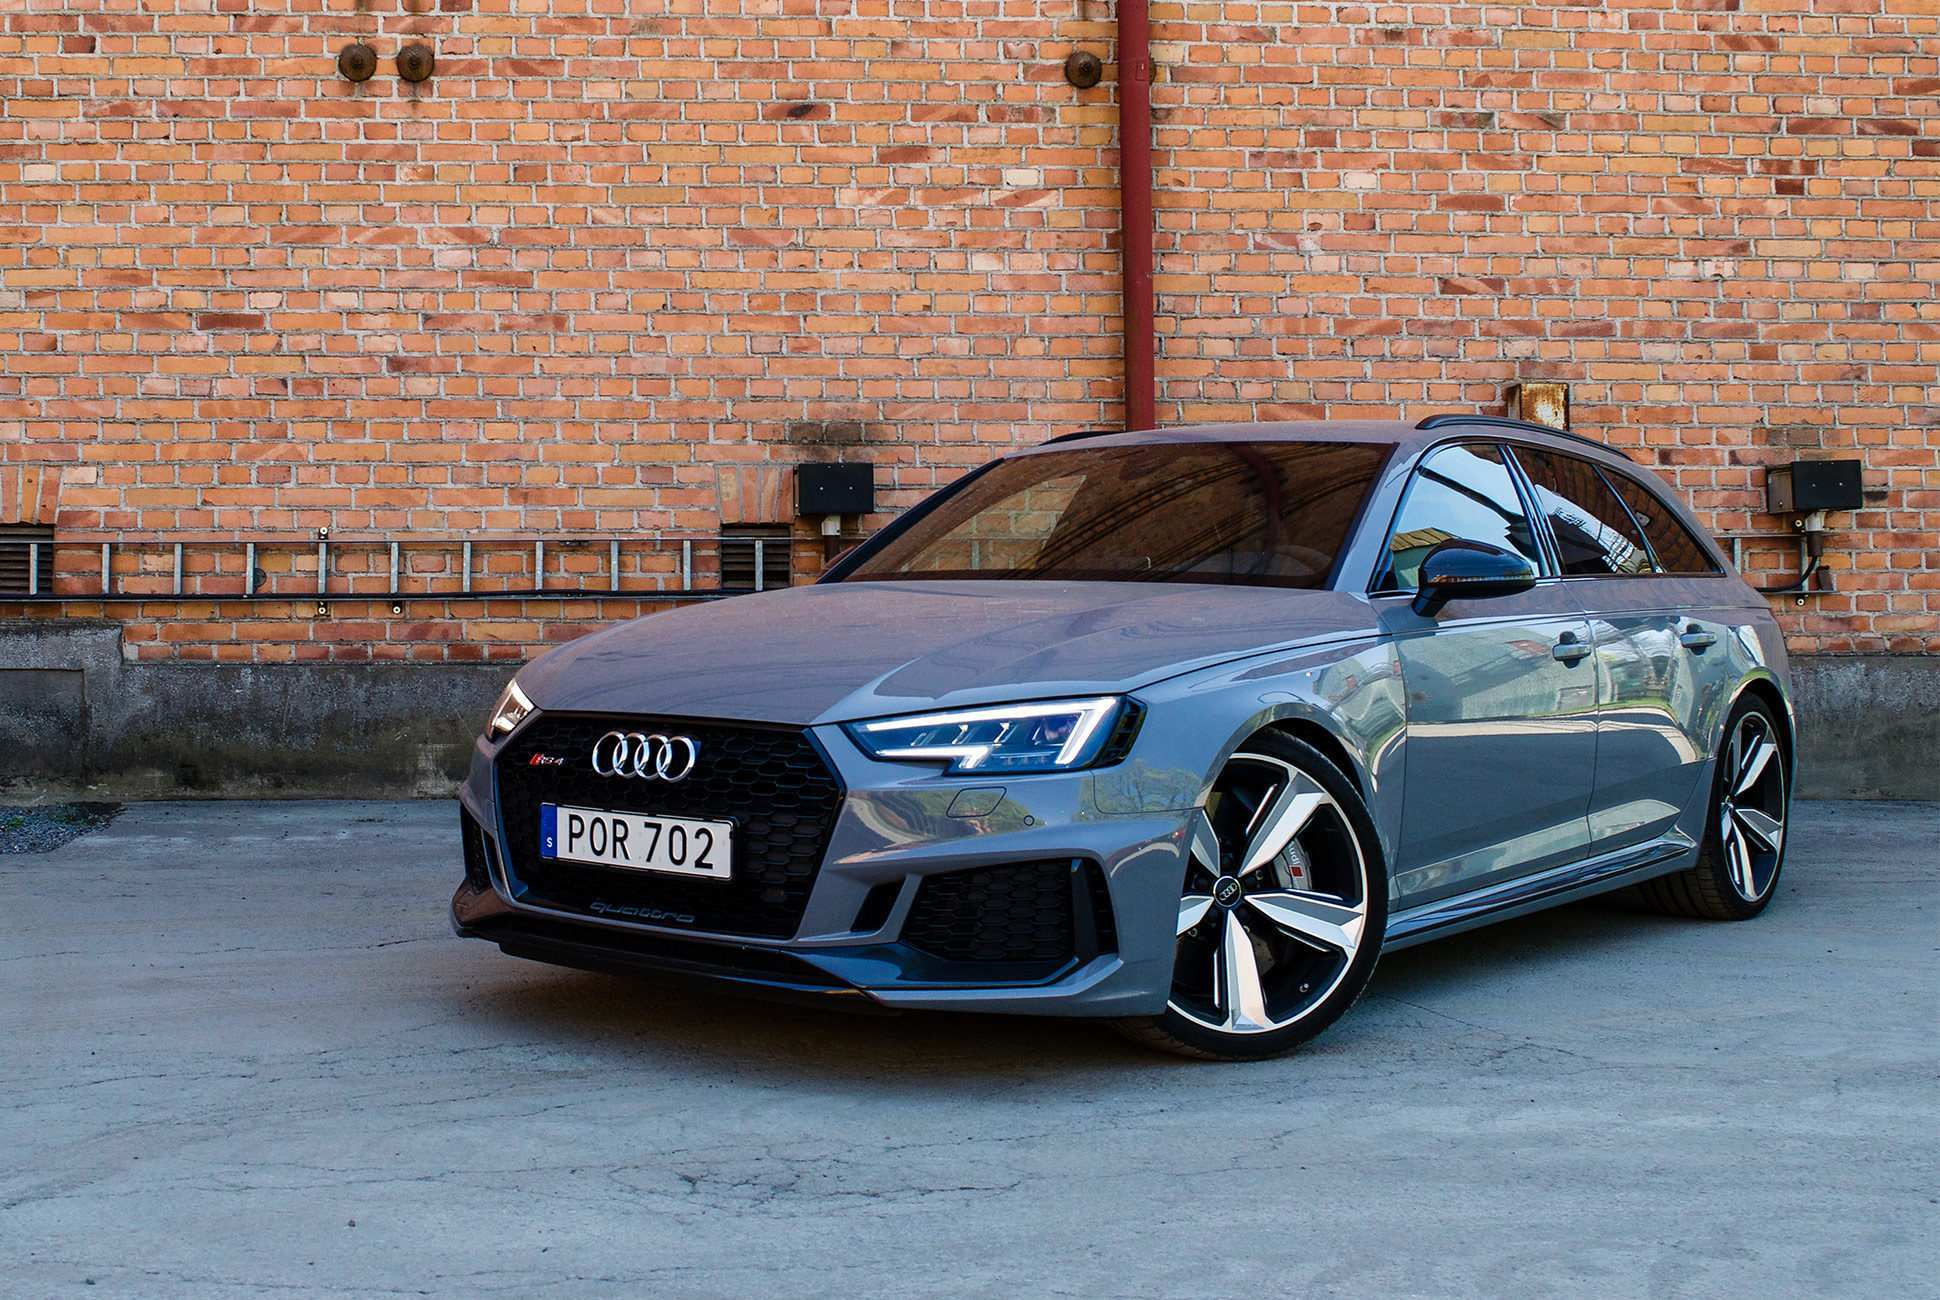 46 Great Best Audi City Car 2019 Exterior Overview by Best Audi City Car 2019 Exterior